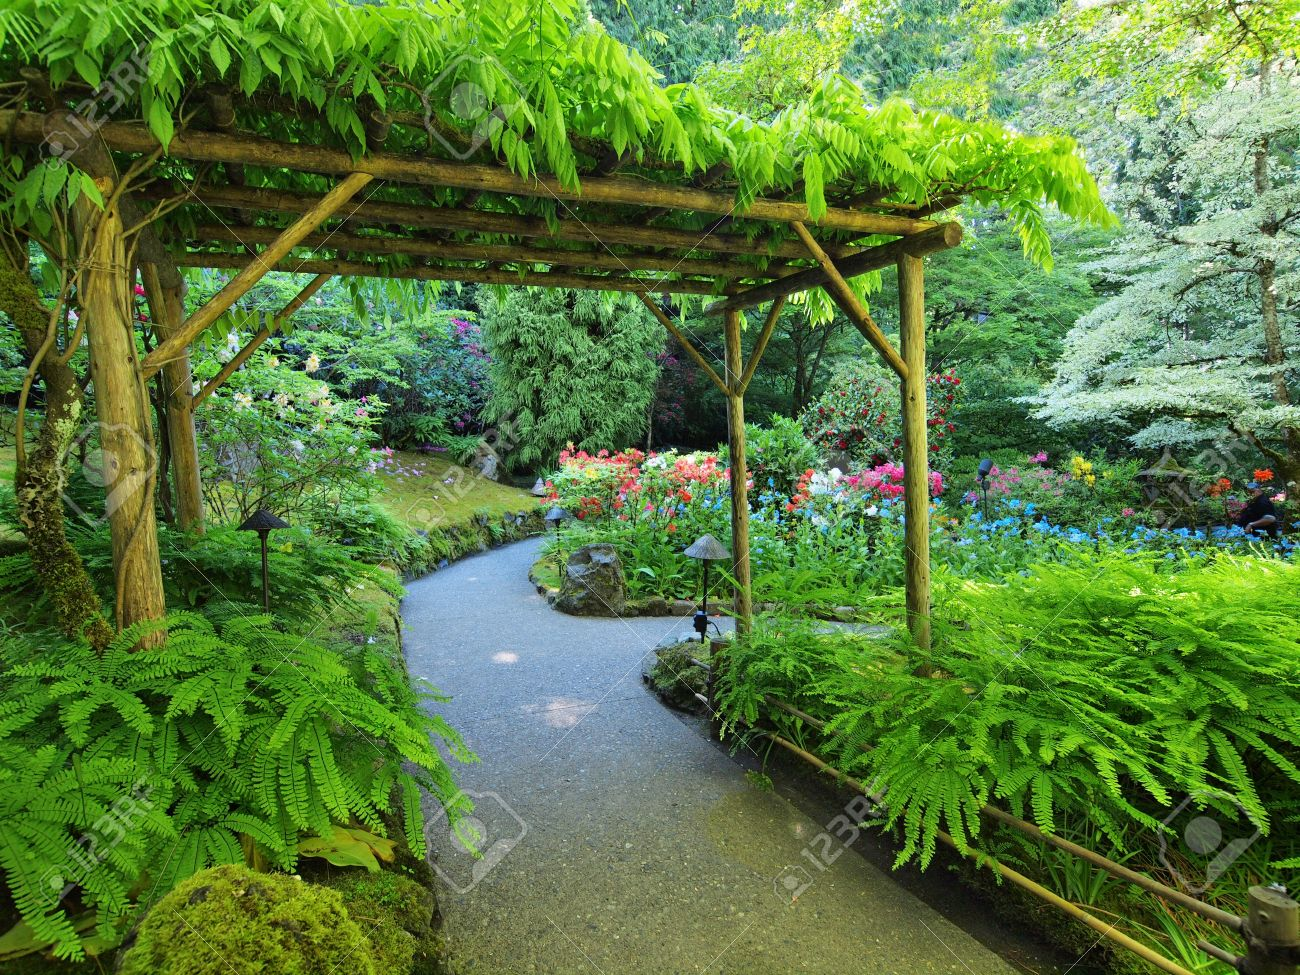 Pergola covered with climbing plants over the walkway in the lush garden  Stock Photo - 21967503 - Pergola Covered With Climbing Plants Over The Walkway In The.. Stock